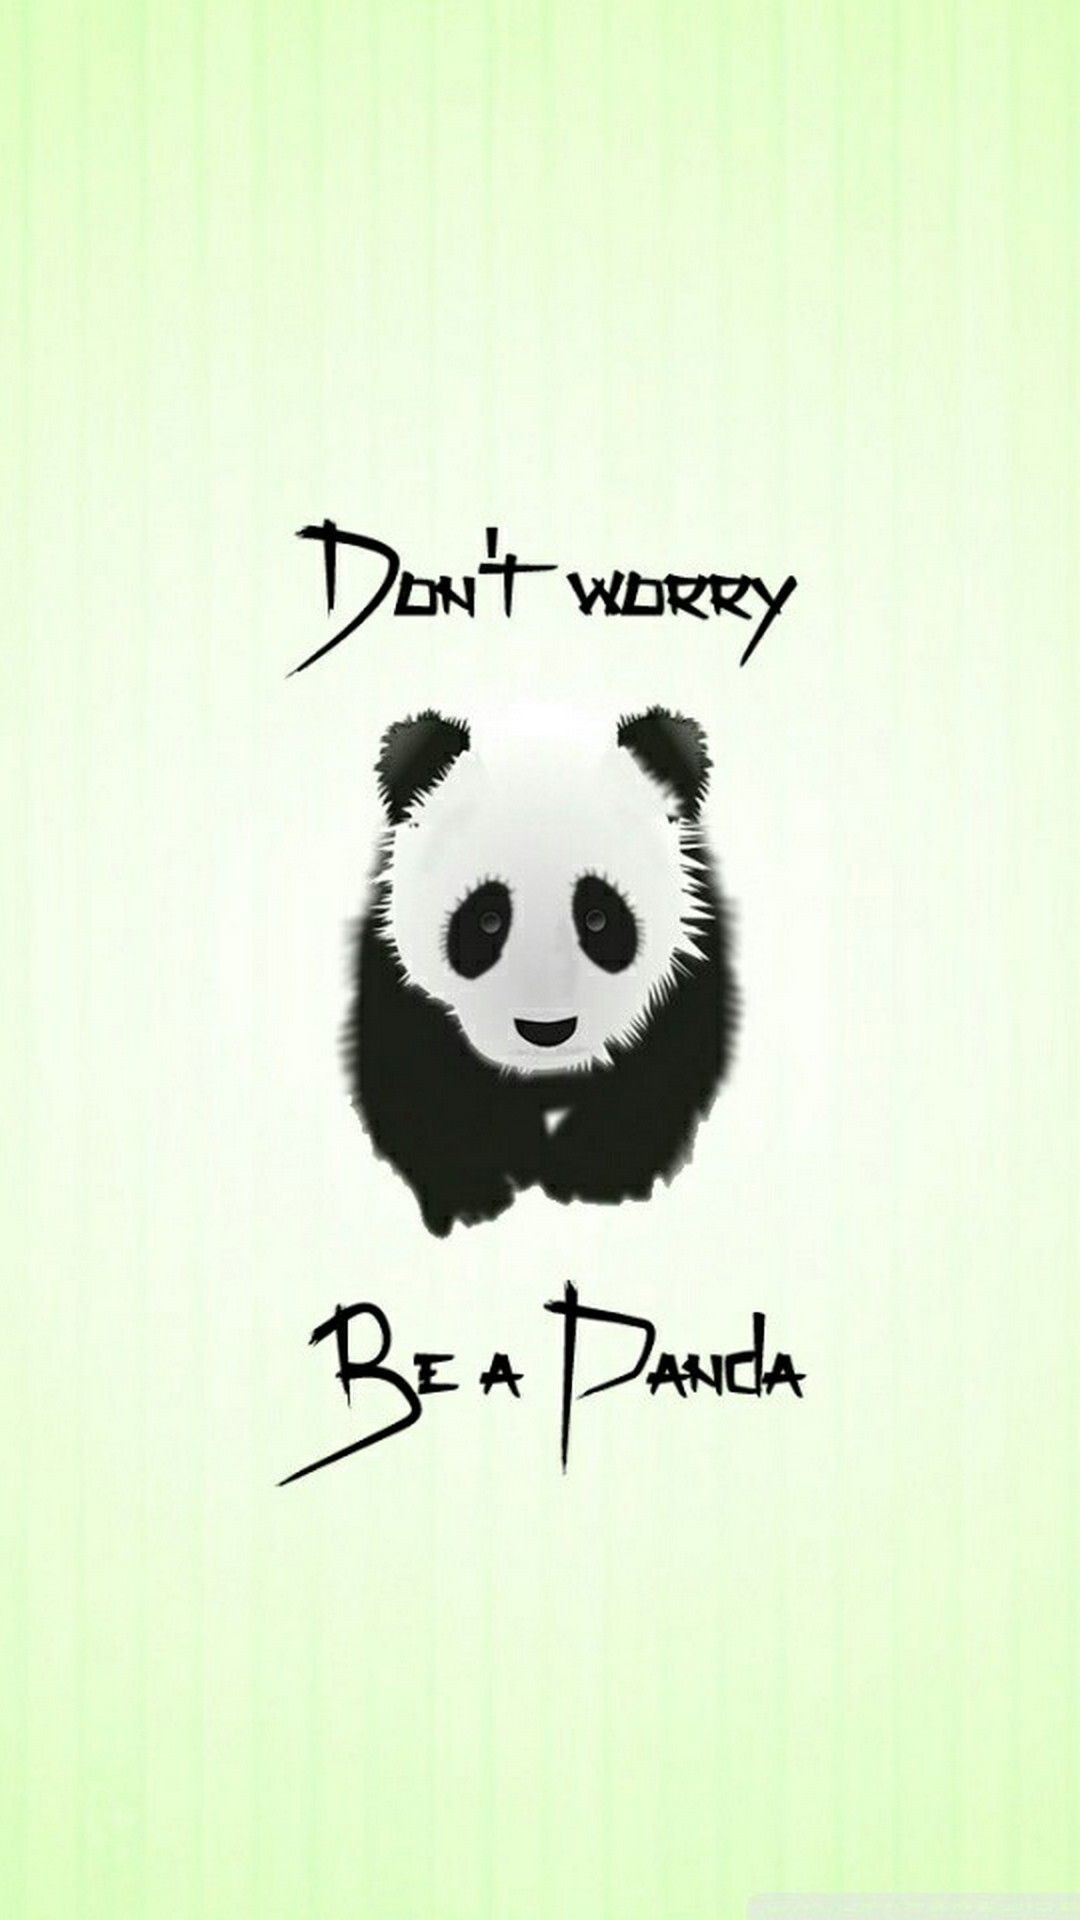 Res: 1080x1920, Cute Dont Worry Be a Panda iPhone Wallpaper - Best iPhone Wallpaper